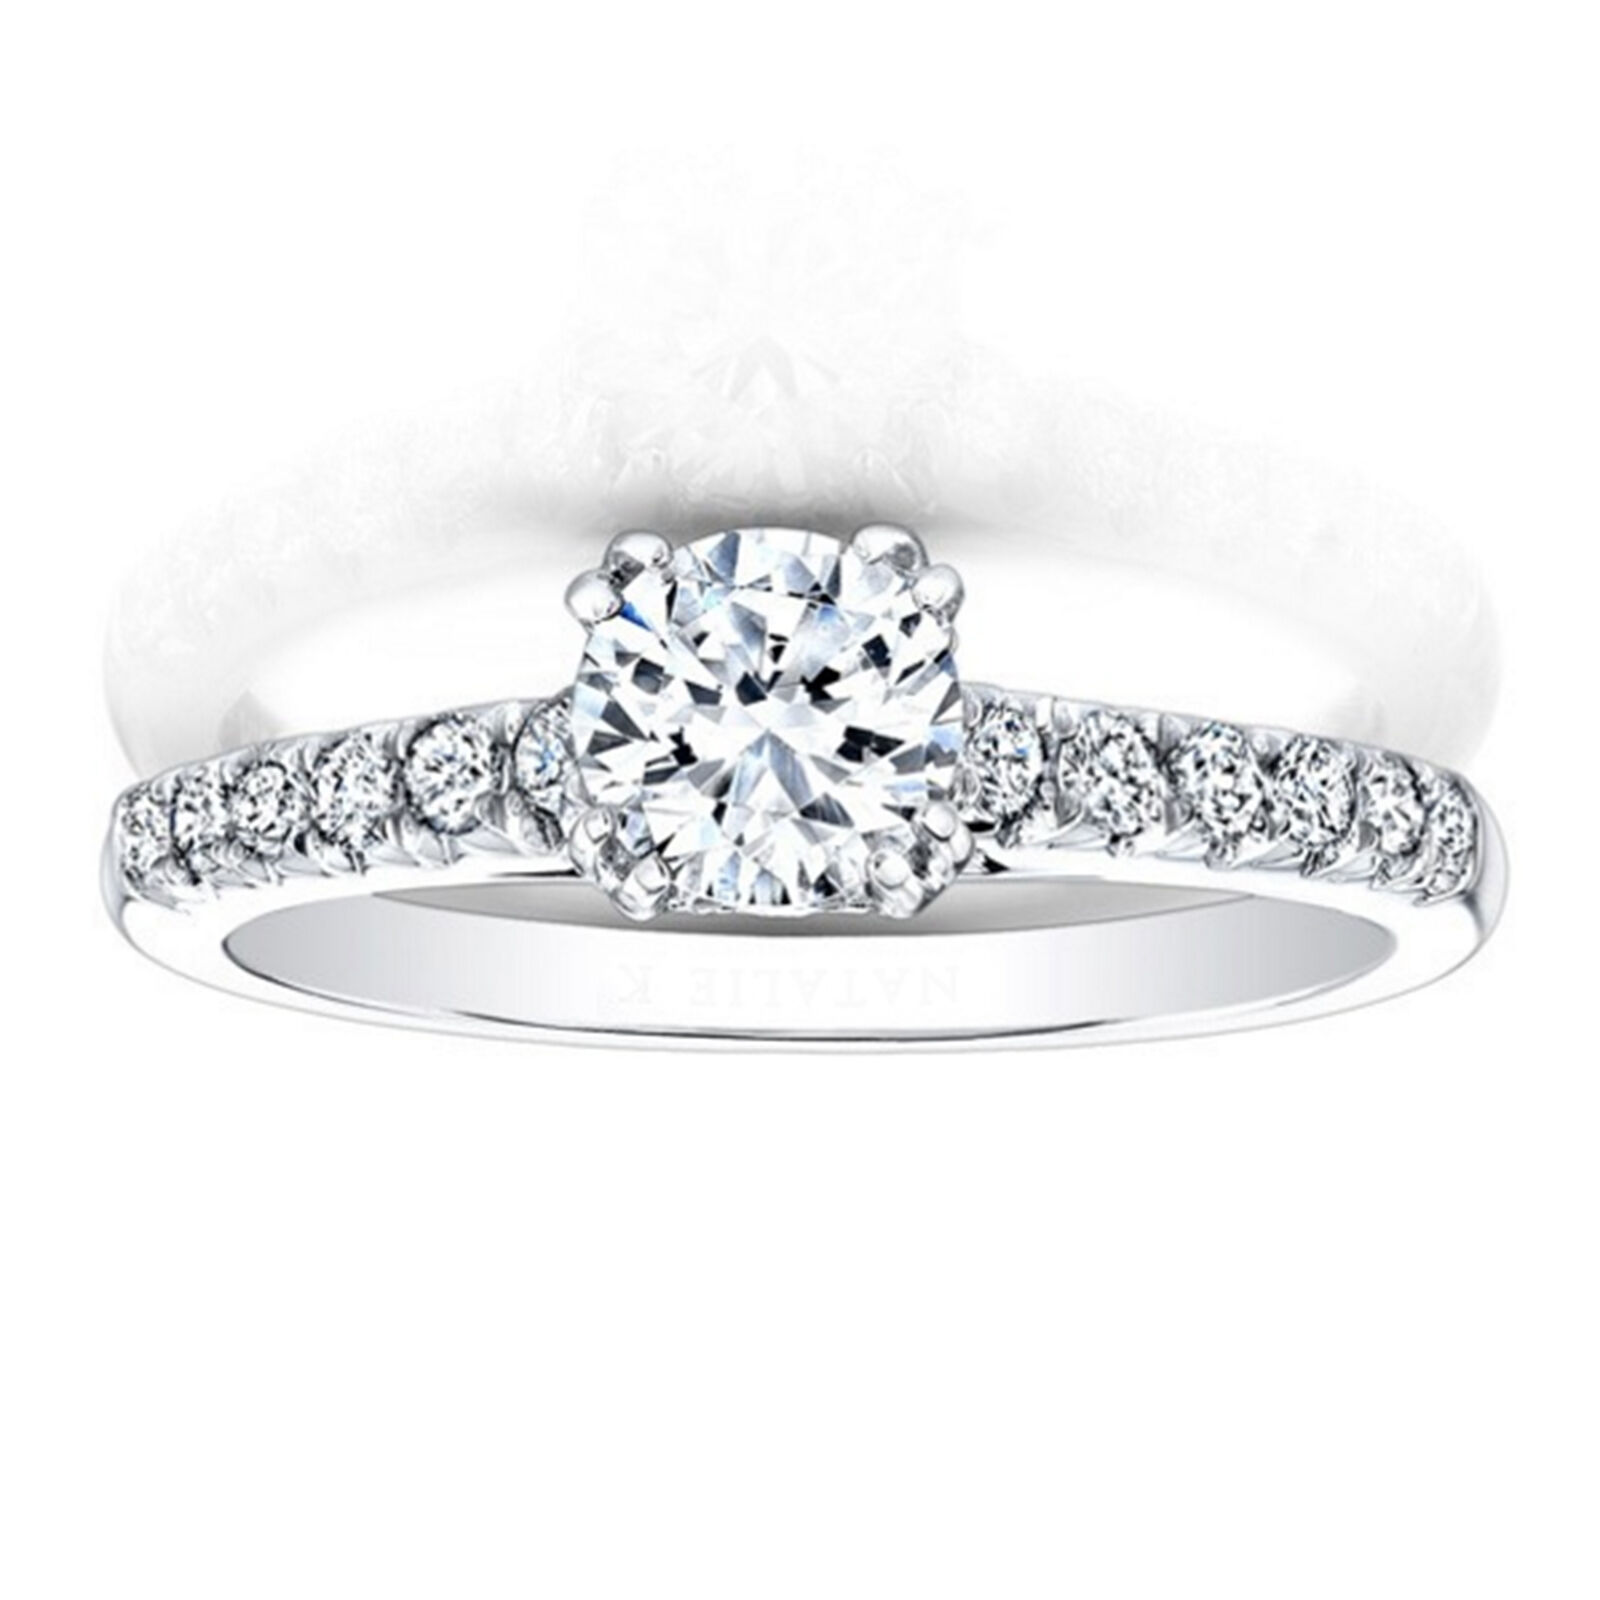 Solid 14K White gold 0.82 Ct Moissanite Diamond Engagement Rings Size 5 6.5 7 8